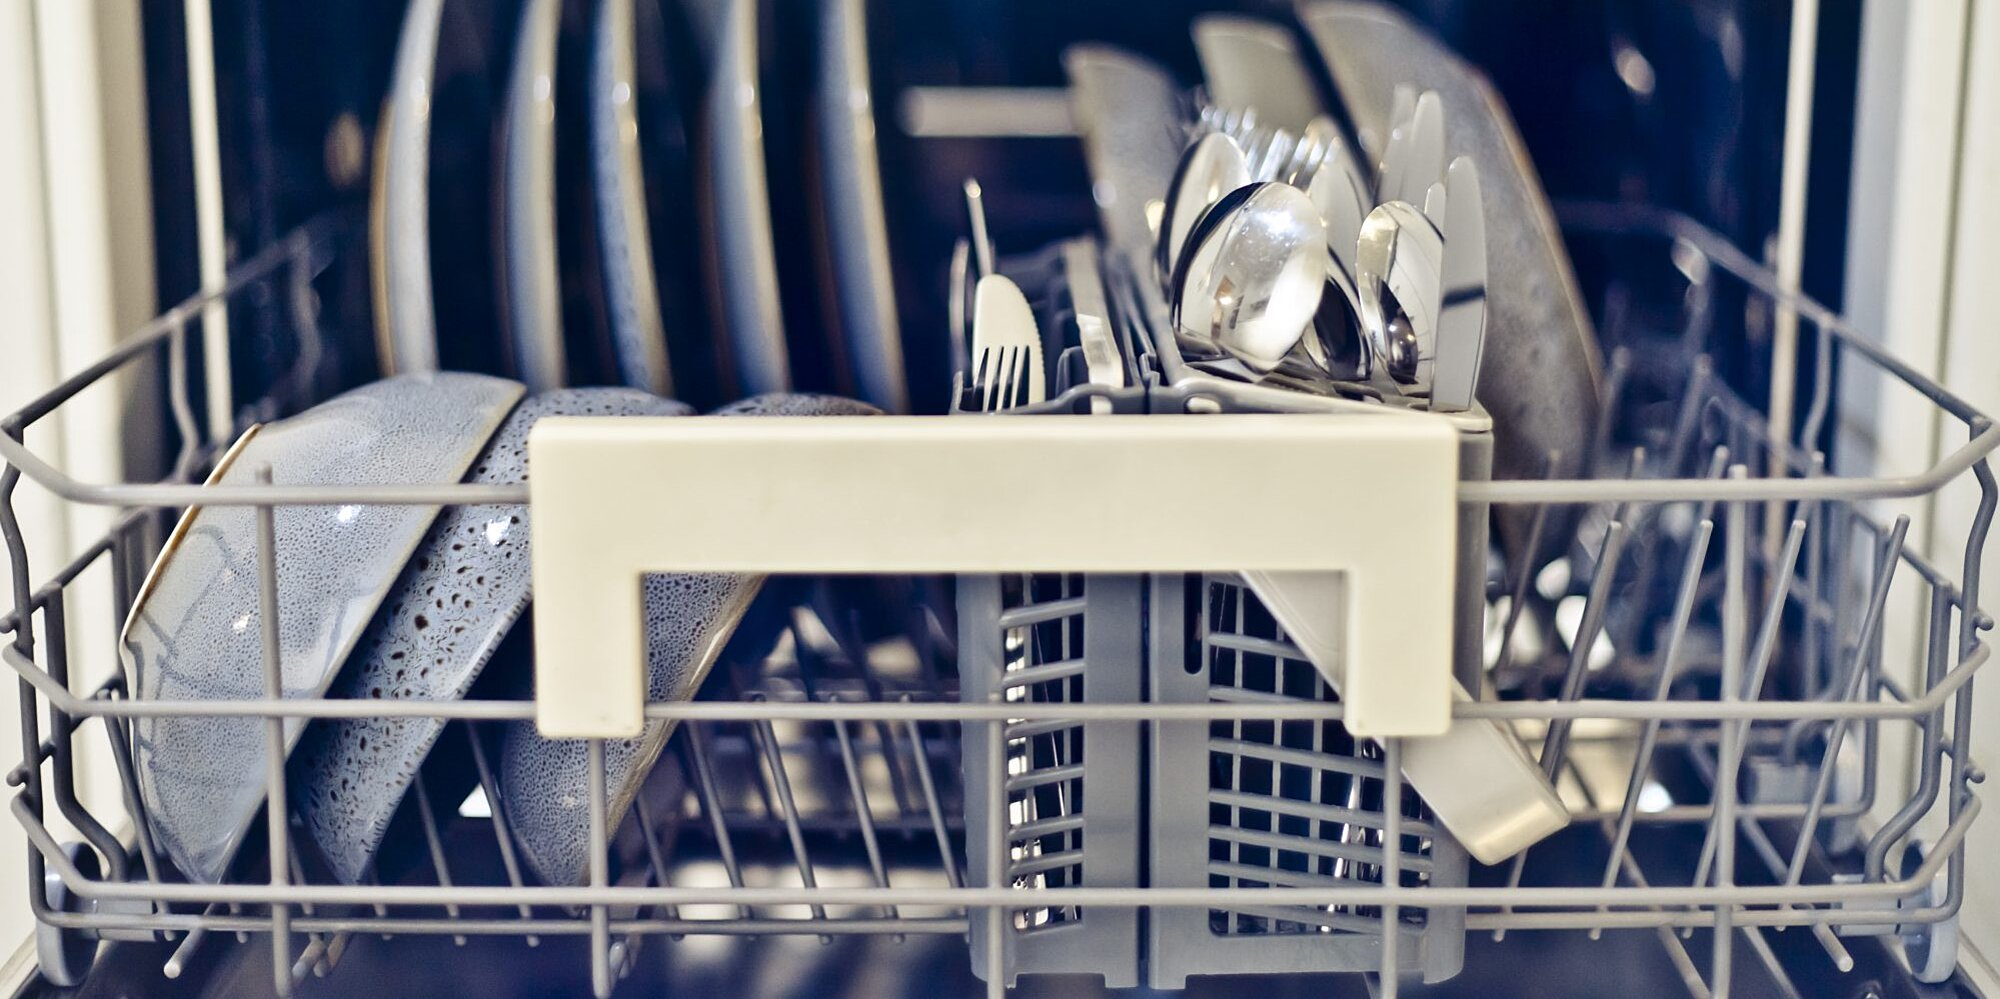 10 things you didnt know your dishwasher could do